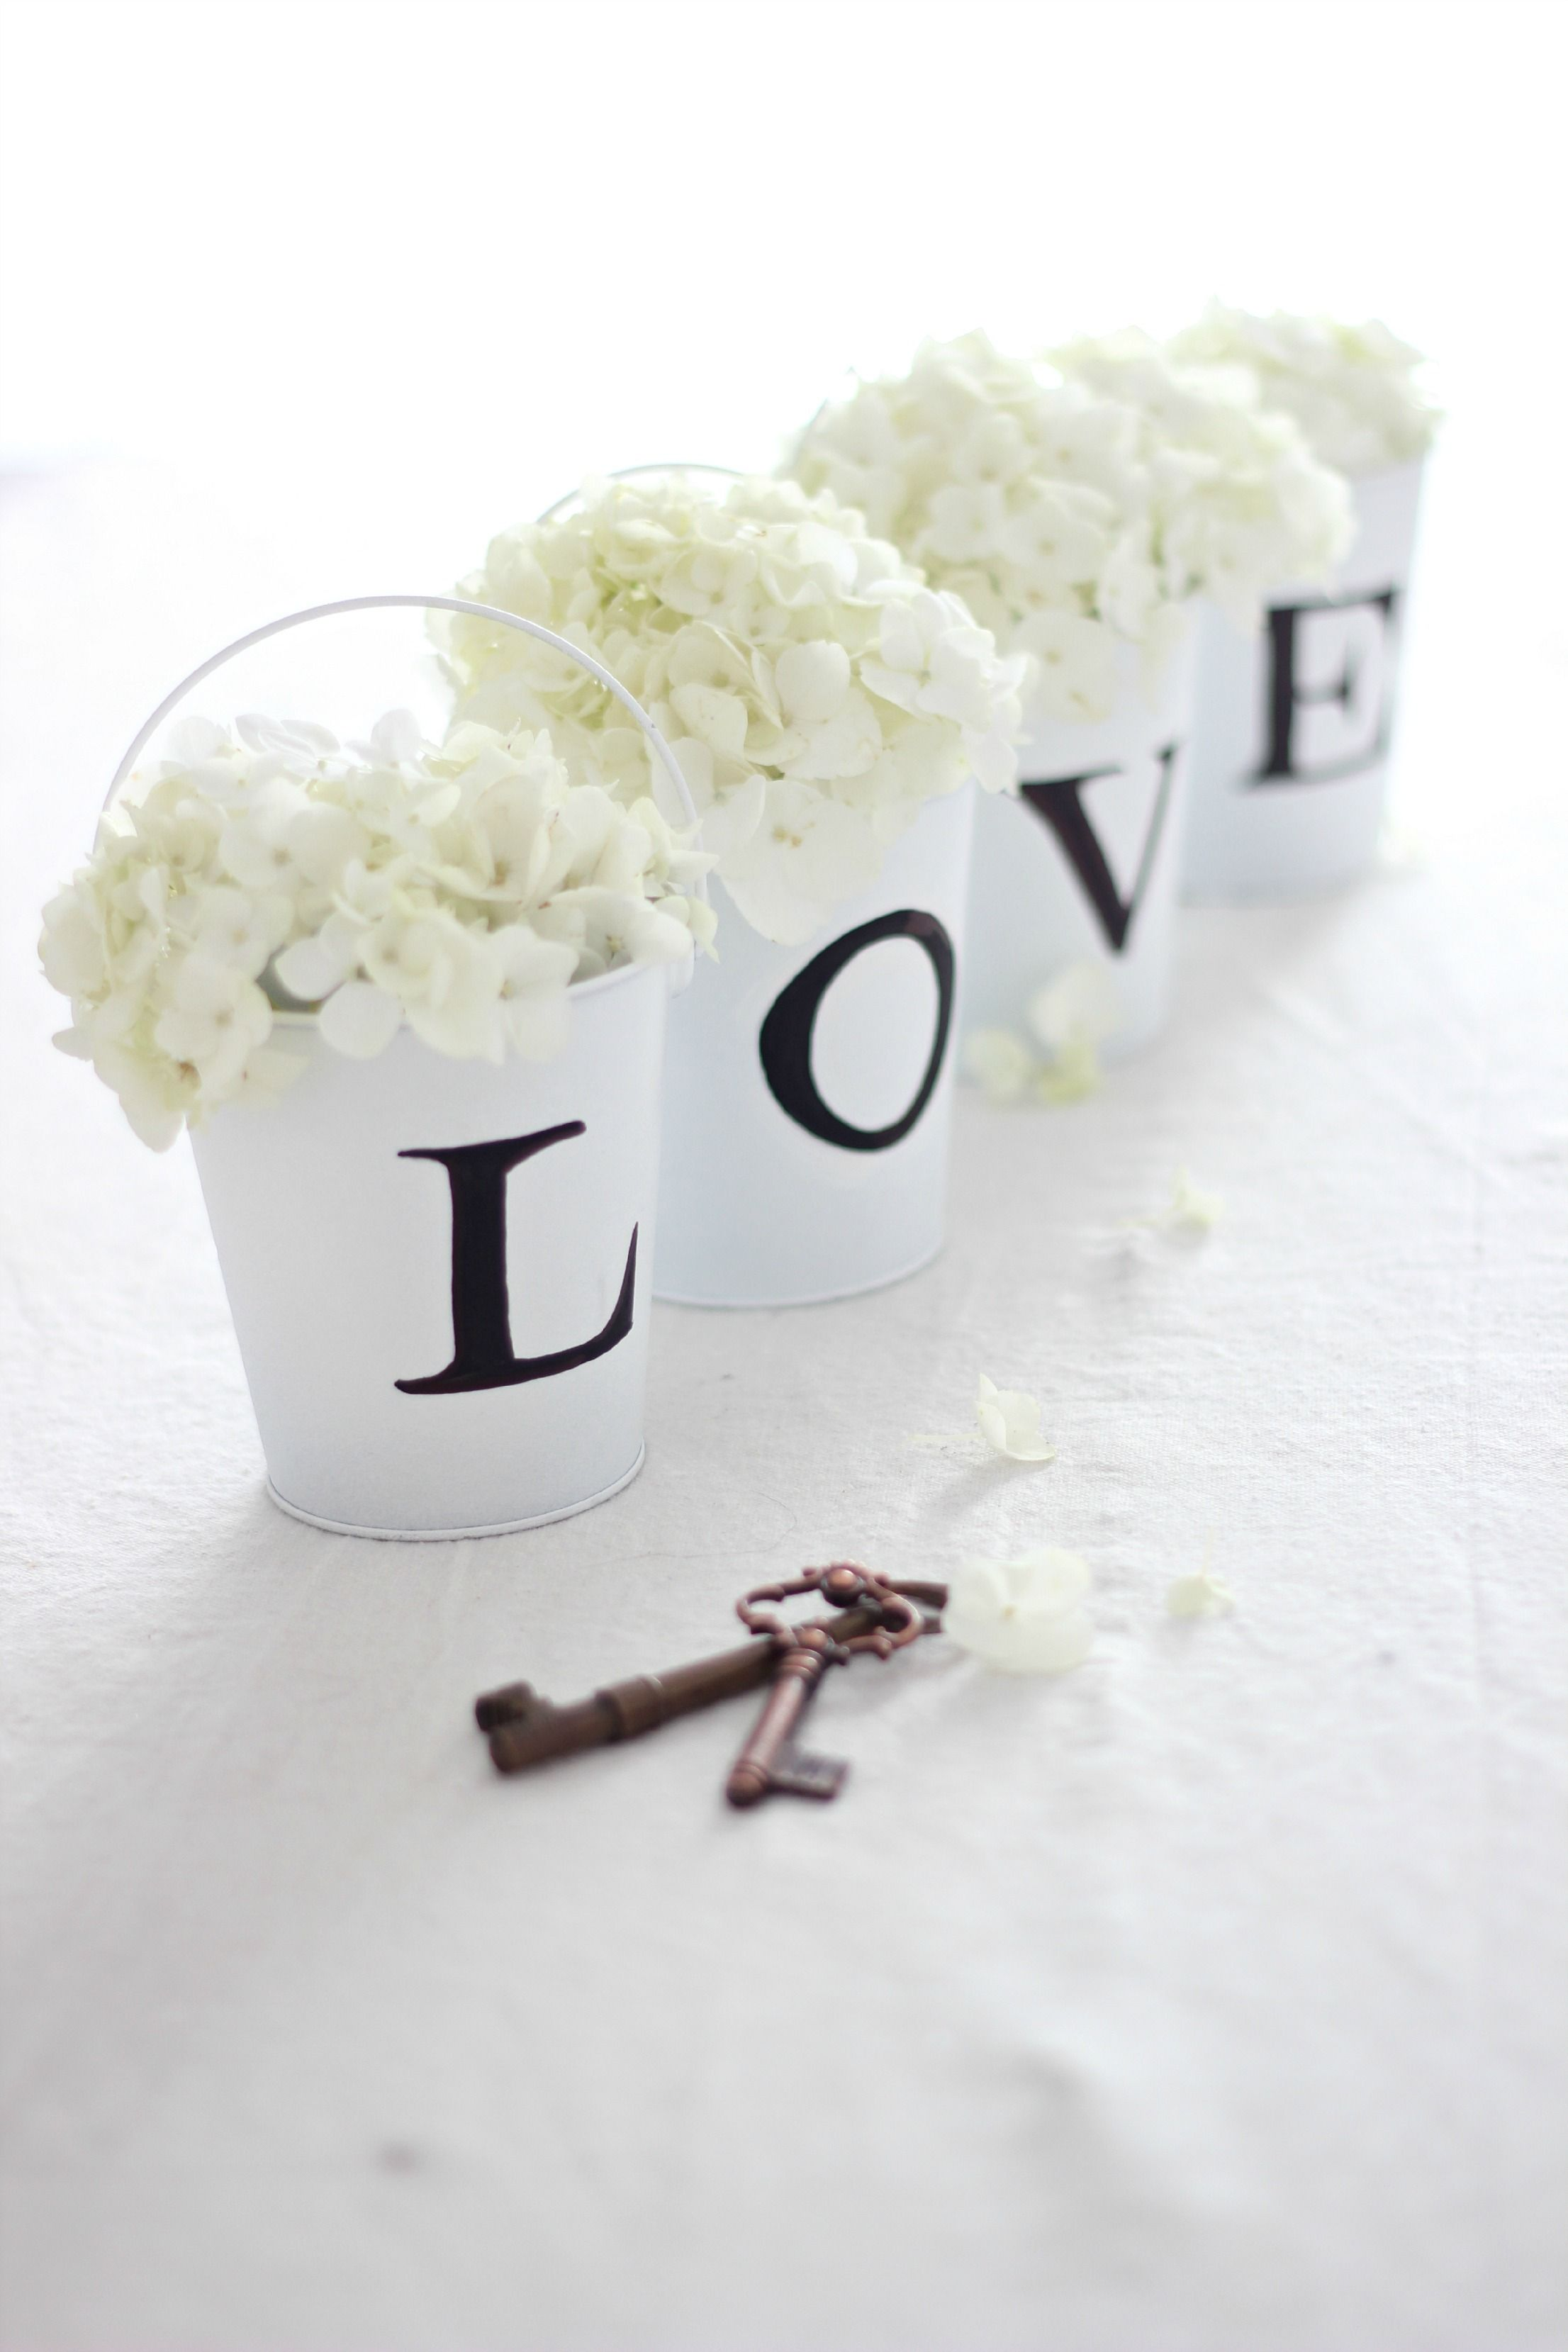 22 Eye-Catching & Inexpensive DIY Wedding Centerpieces | Pinterest ...